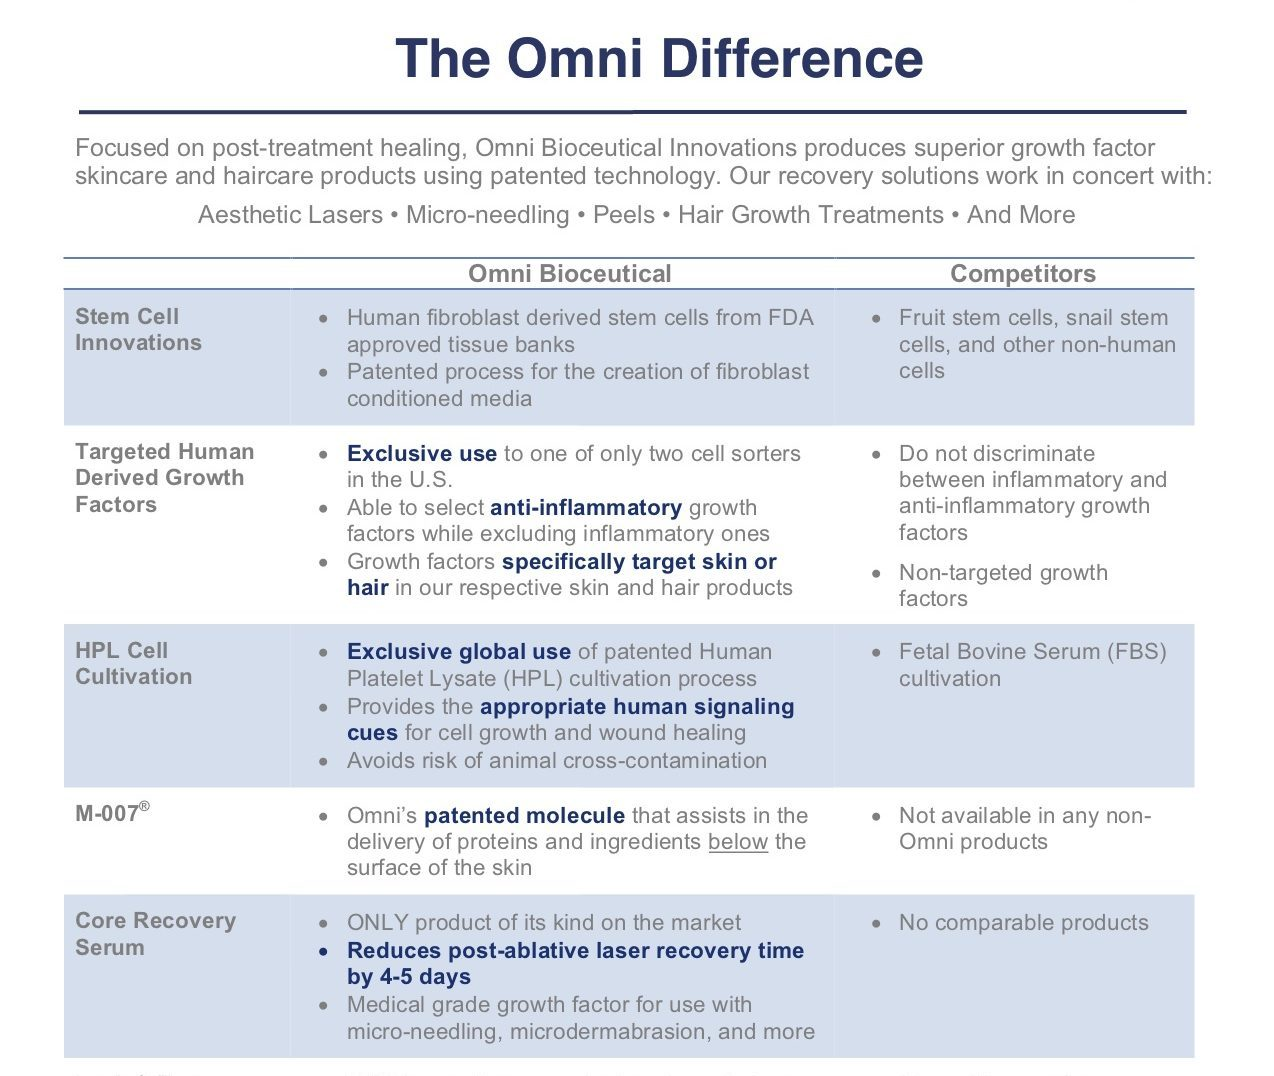 competitors, comparison, the omni difference, human fibroblast derived stem cells from FDA approved tissue banks, anti-inflammatory, #loveomniskin, hfg, human growth factors, HPL, targeted, regeneration, facial serum, skin health solutions, hair health solutions, biome cleanser, clear skin, clean skin, m-007, boosting, treatment and care, skin care, hair care, omni, collagen, elastin, rebuild, cell health support, reduces recovery, collagen, elastin, restorative, daily, community